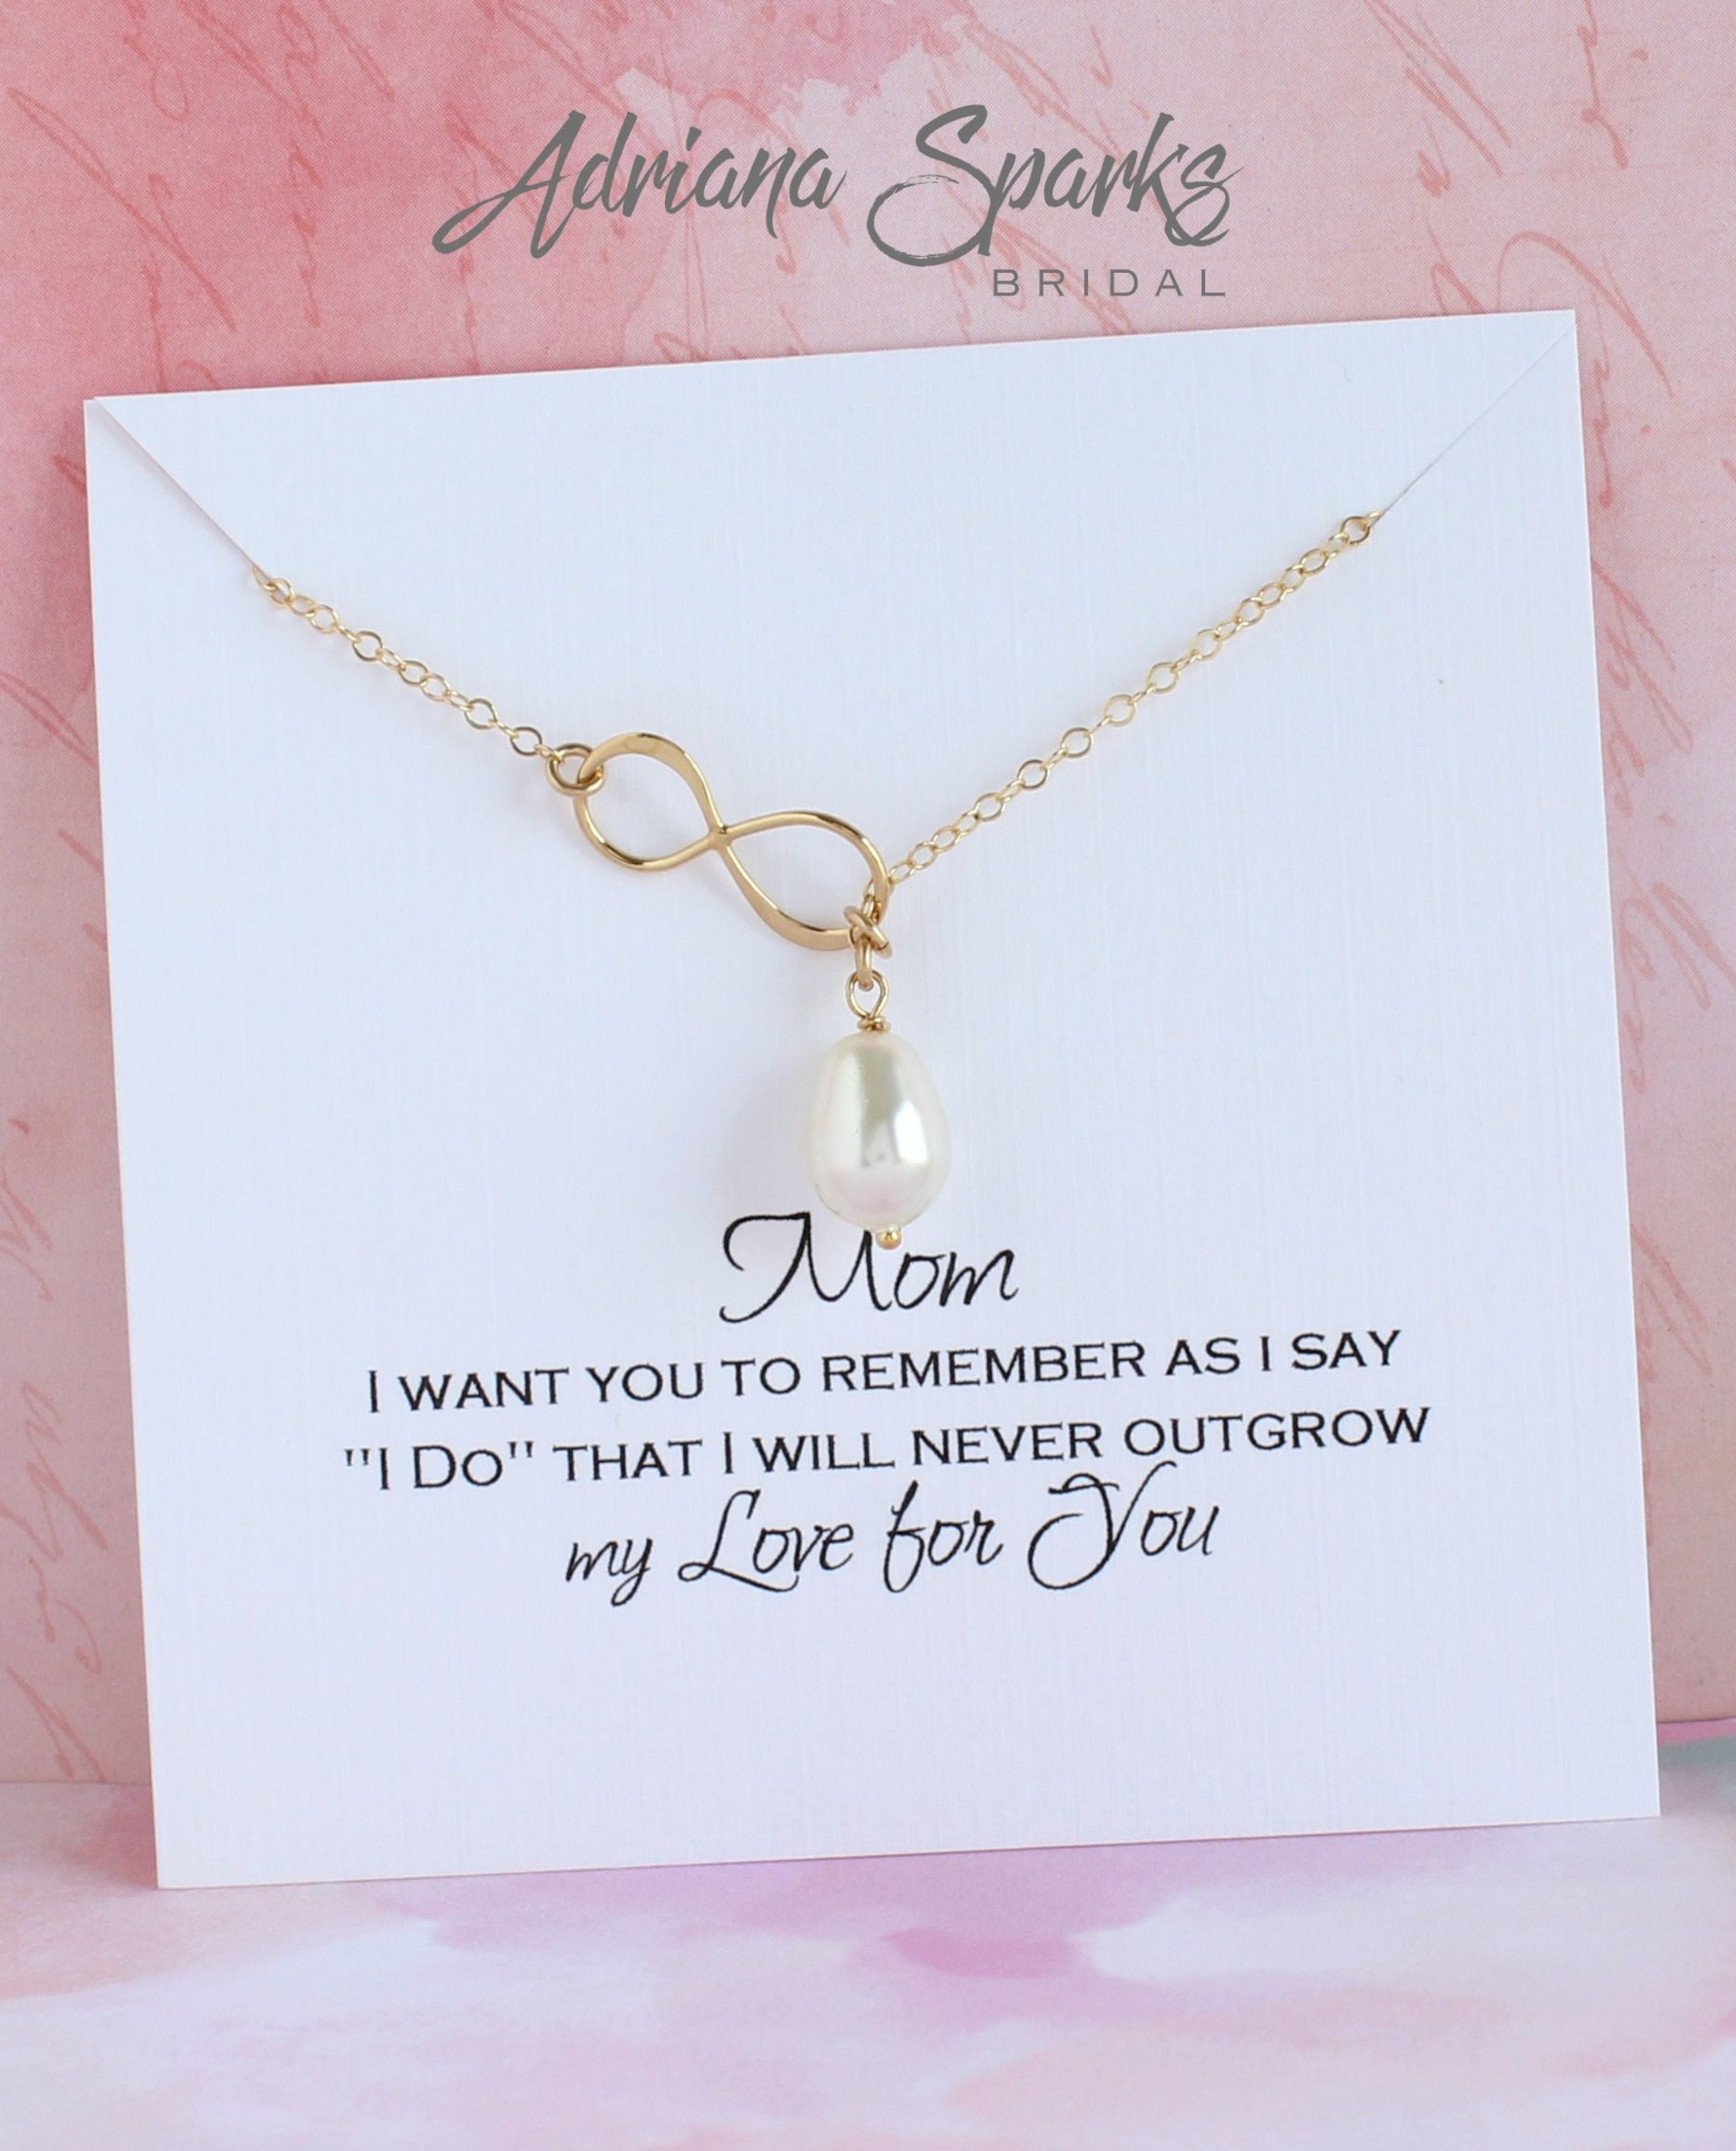 Muse Infinite Personalized Bridesmaid Gifts for Bridesmaid Jewelry Gift for Bridemaid Necklace Bridal Party Gifts for Best Friends